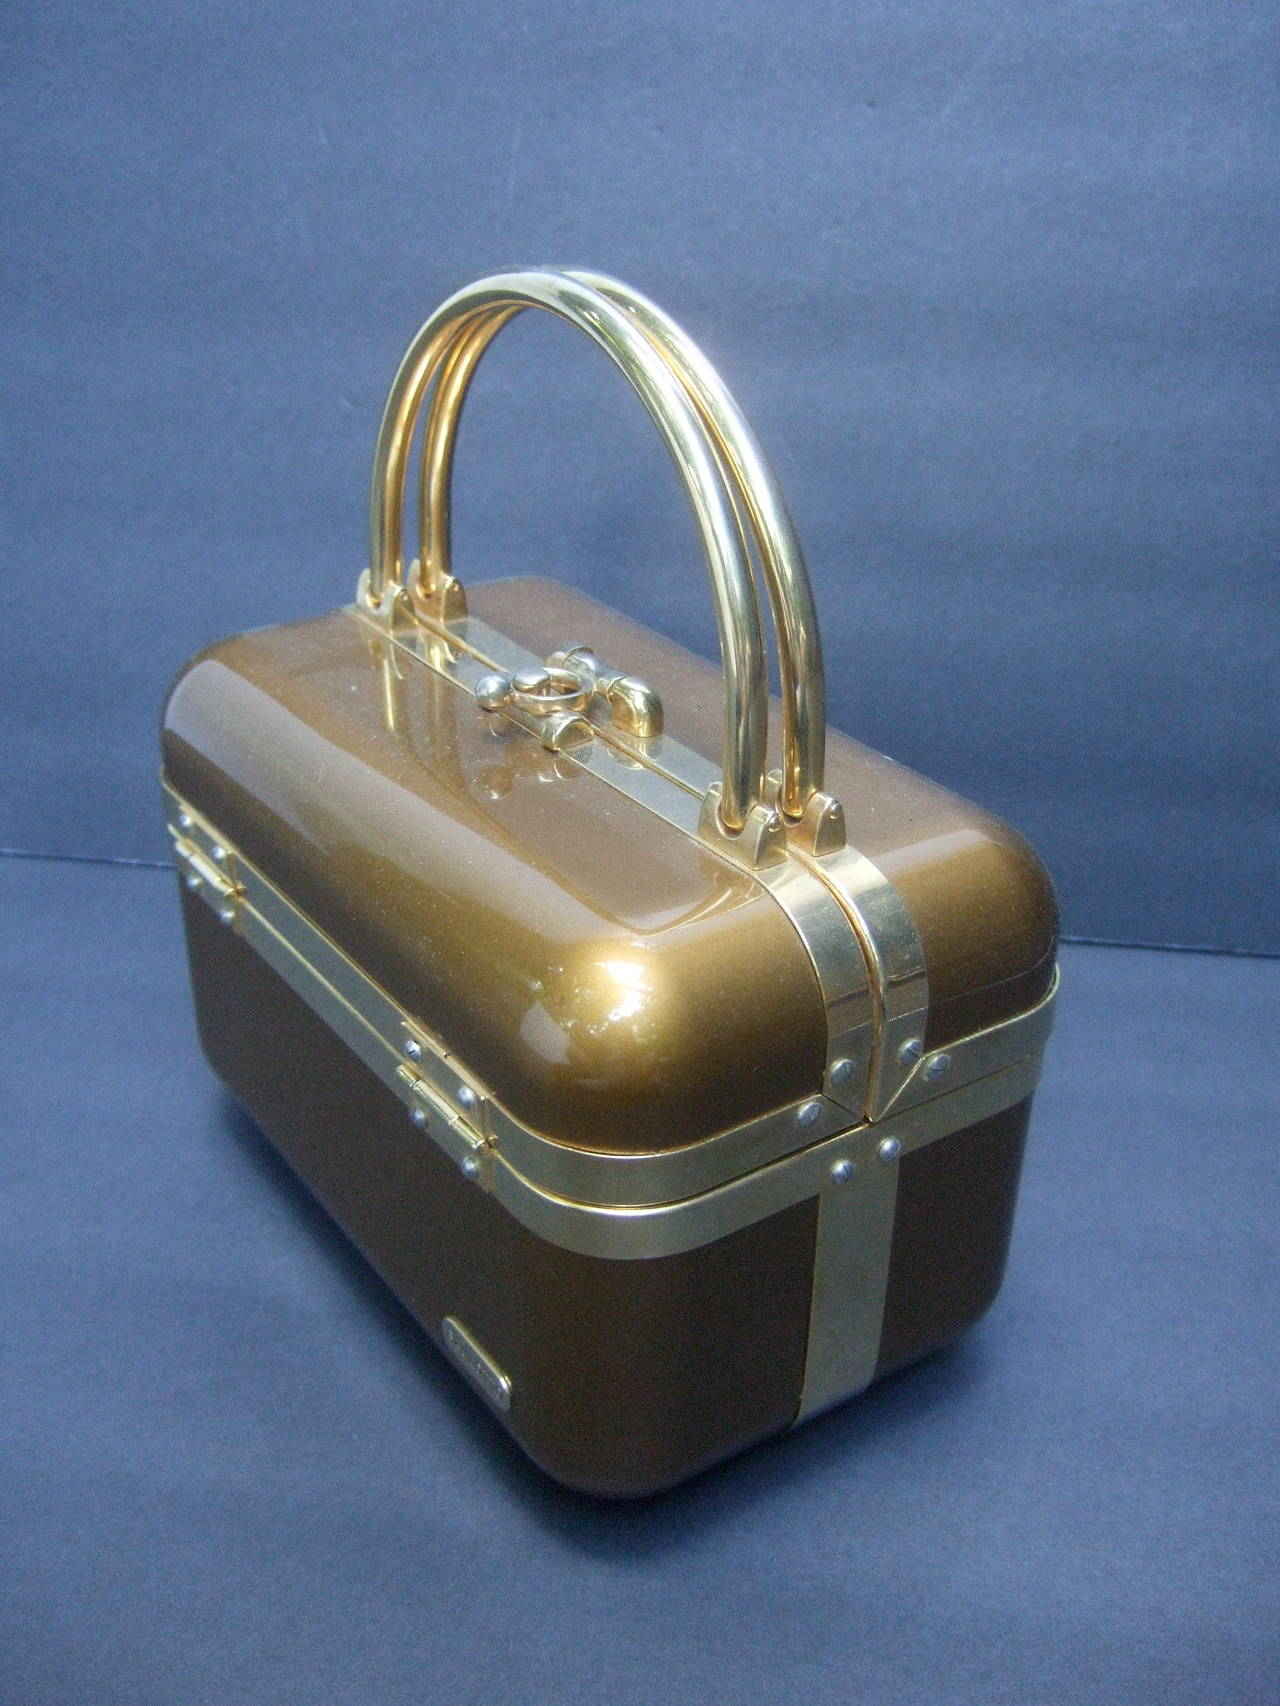 Women's Sleek 1970s Italian Bronze Lucite Handbag Designed by Baulotto For Sale